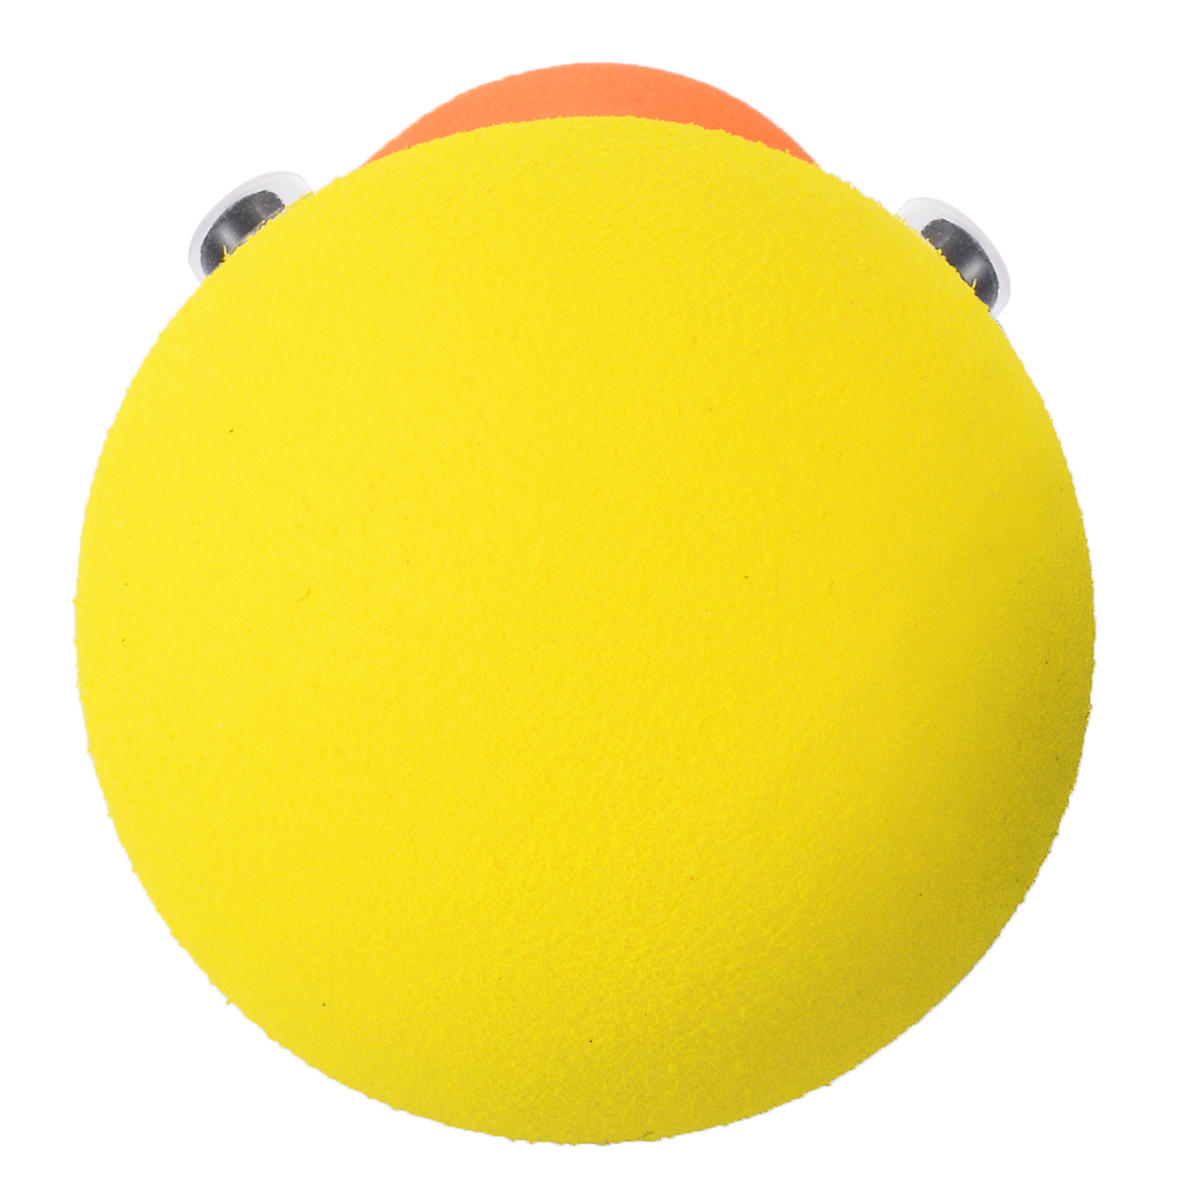 New Arrival 1 PC Cute Yellow Duck Car Antenna Pen Topper Aerial Ball Decoration Gift Toy 2019 Hot New